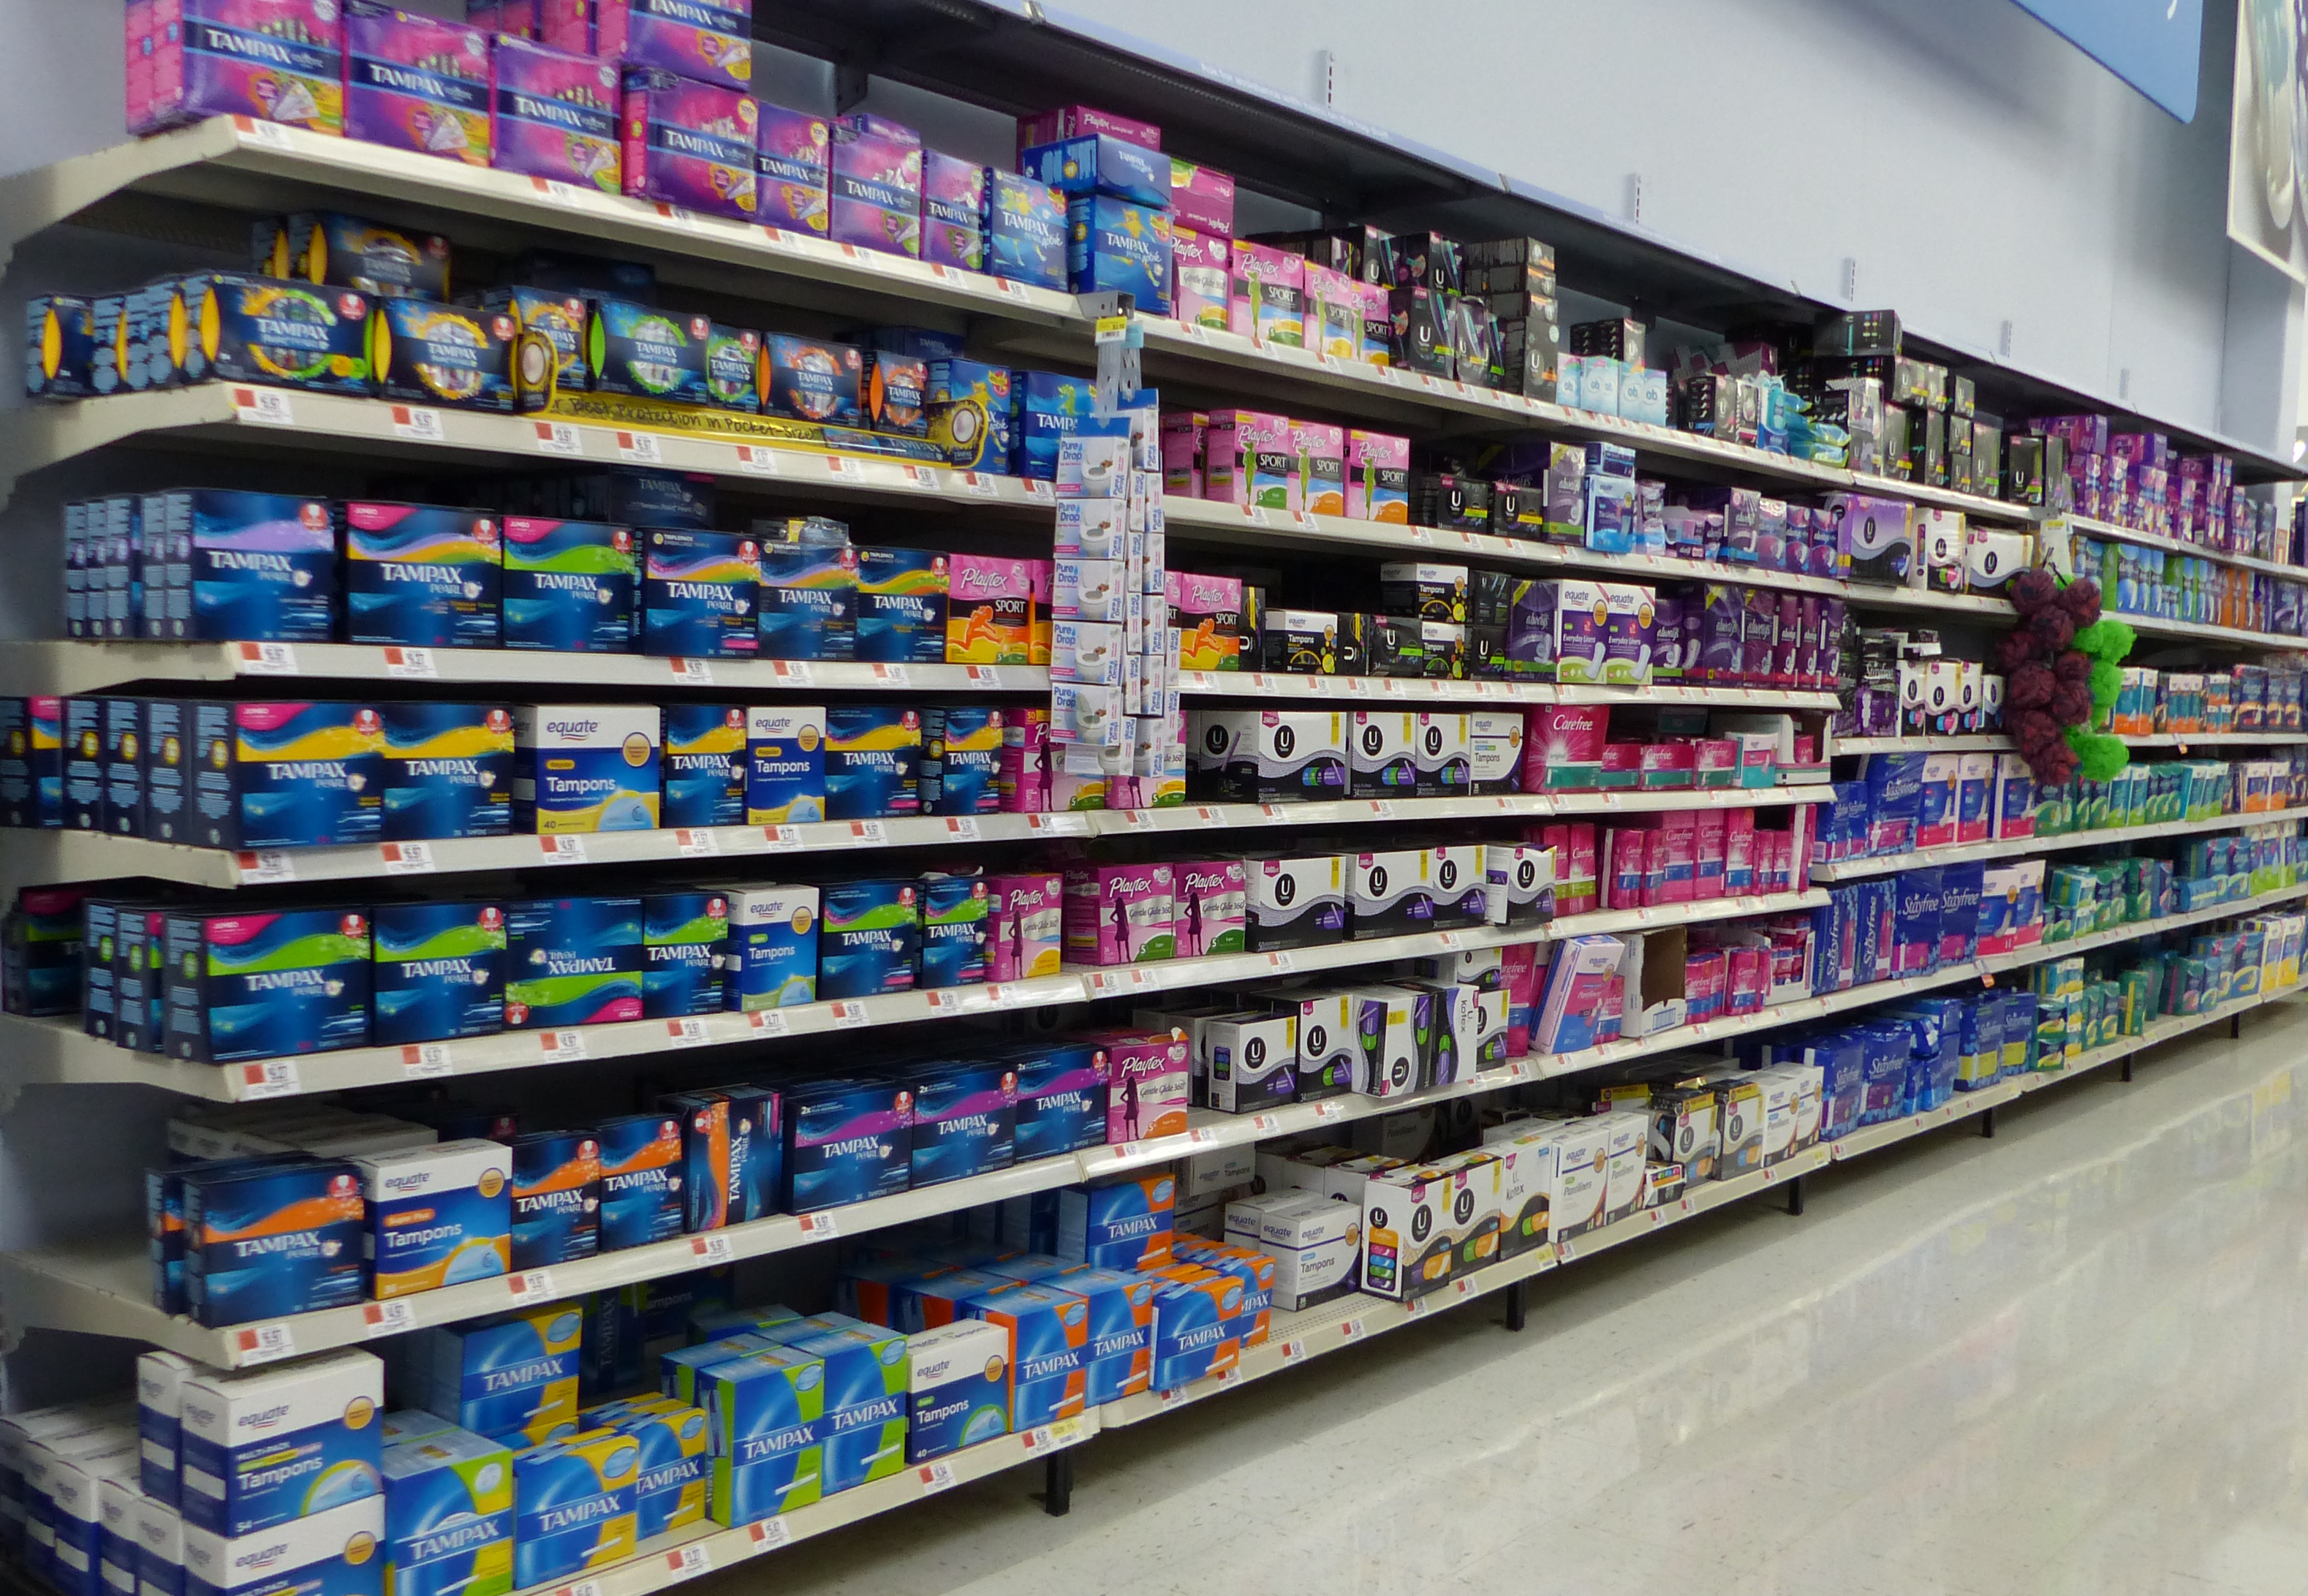 Scotland lawmakers approve bill to provide free sanitary products to women